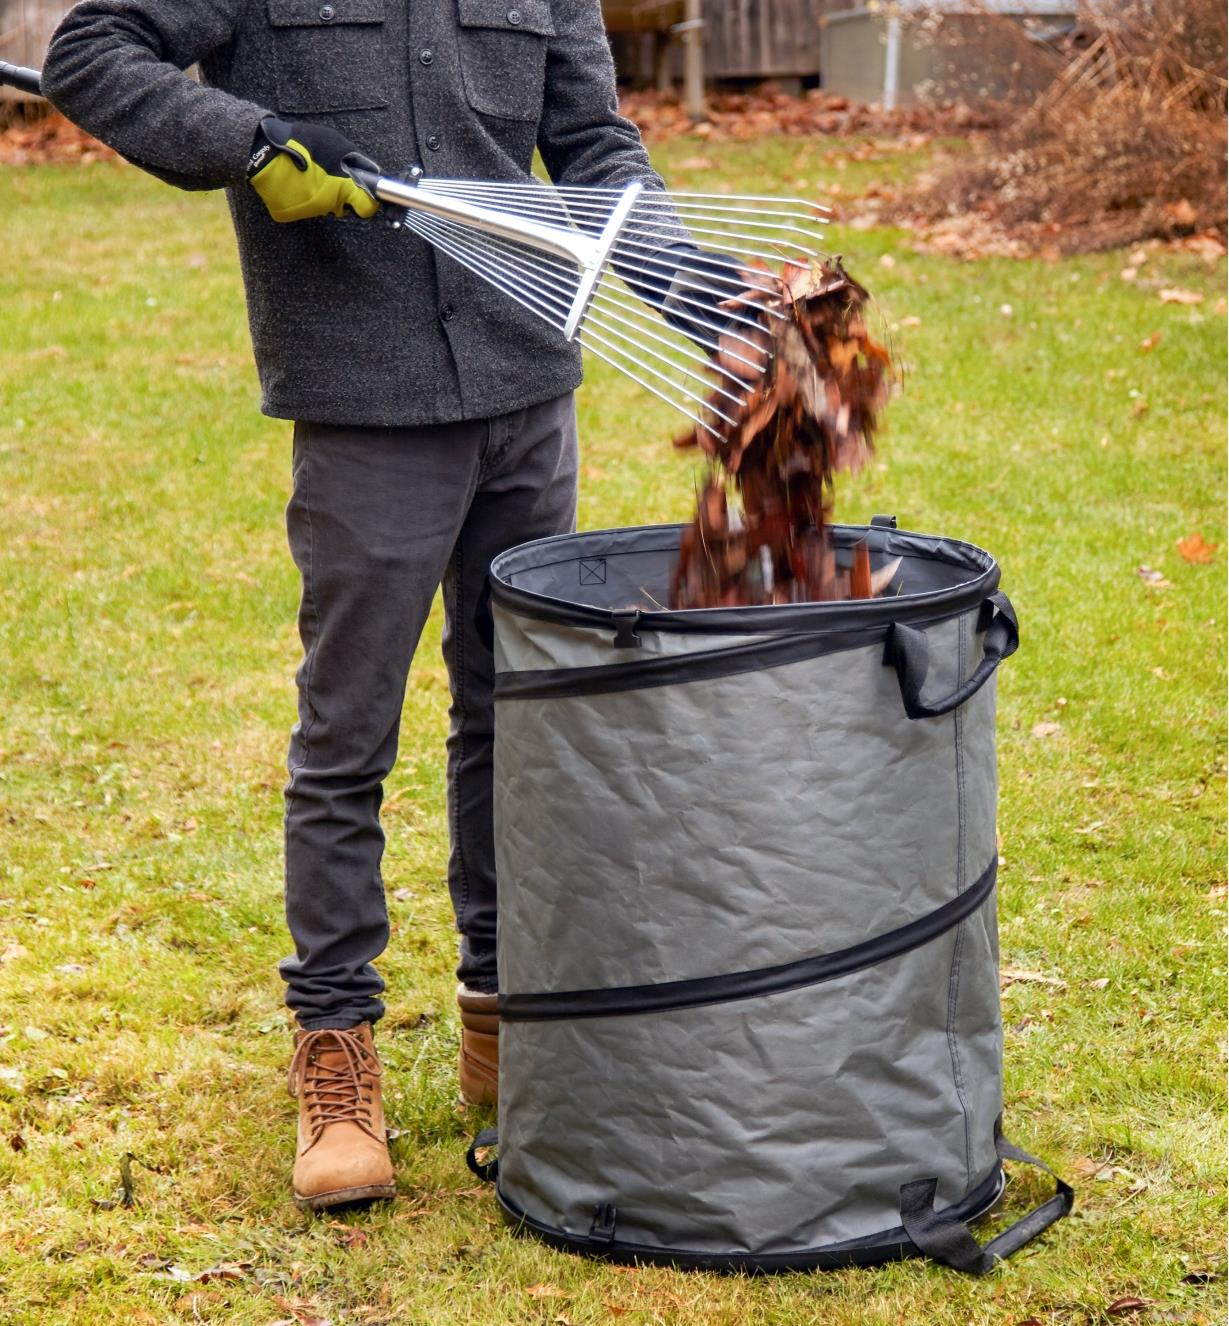 Filling the hard-bottom pop-up tote with yard waste